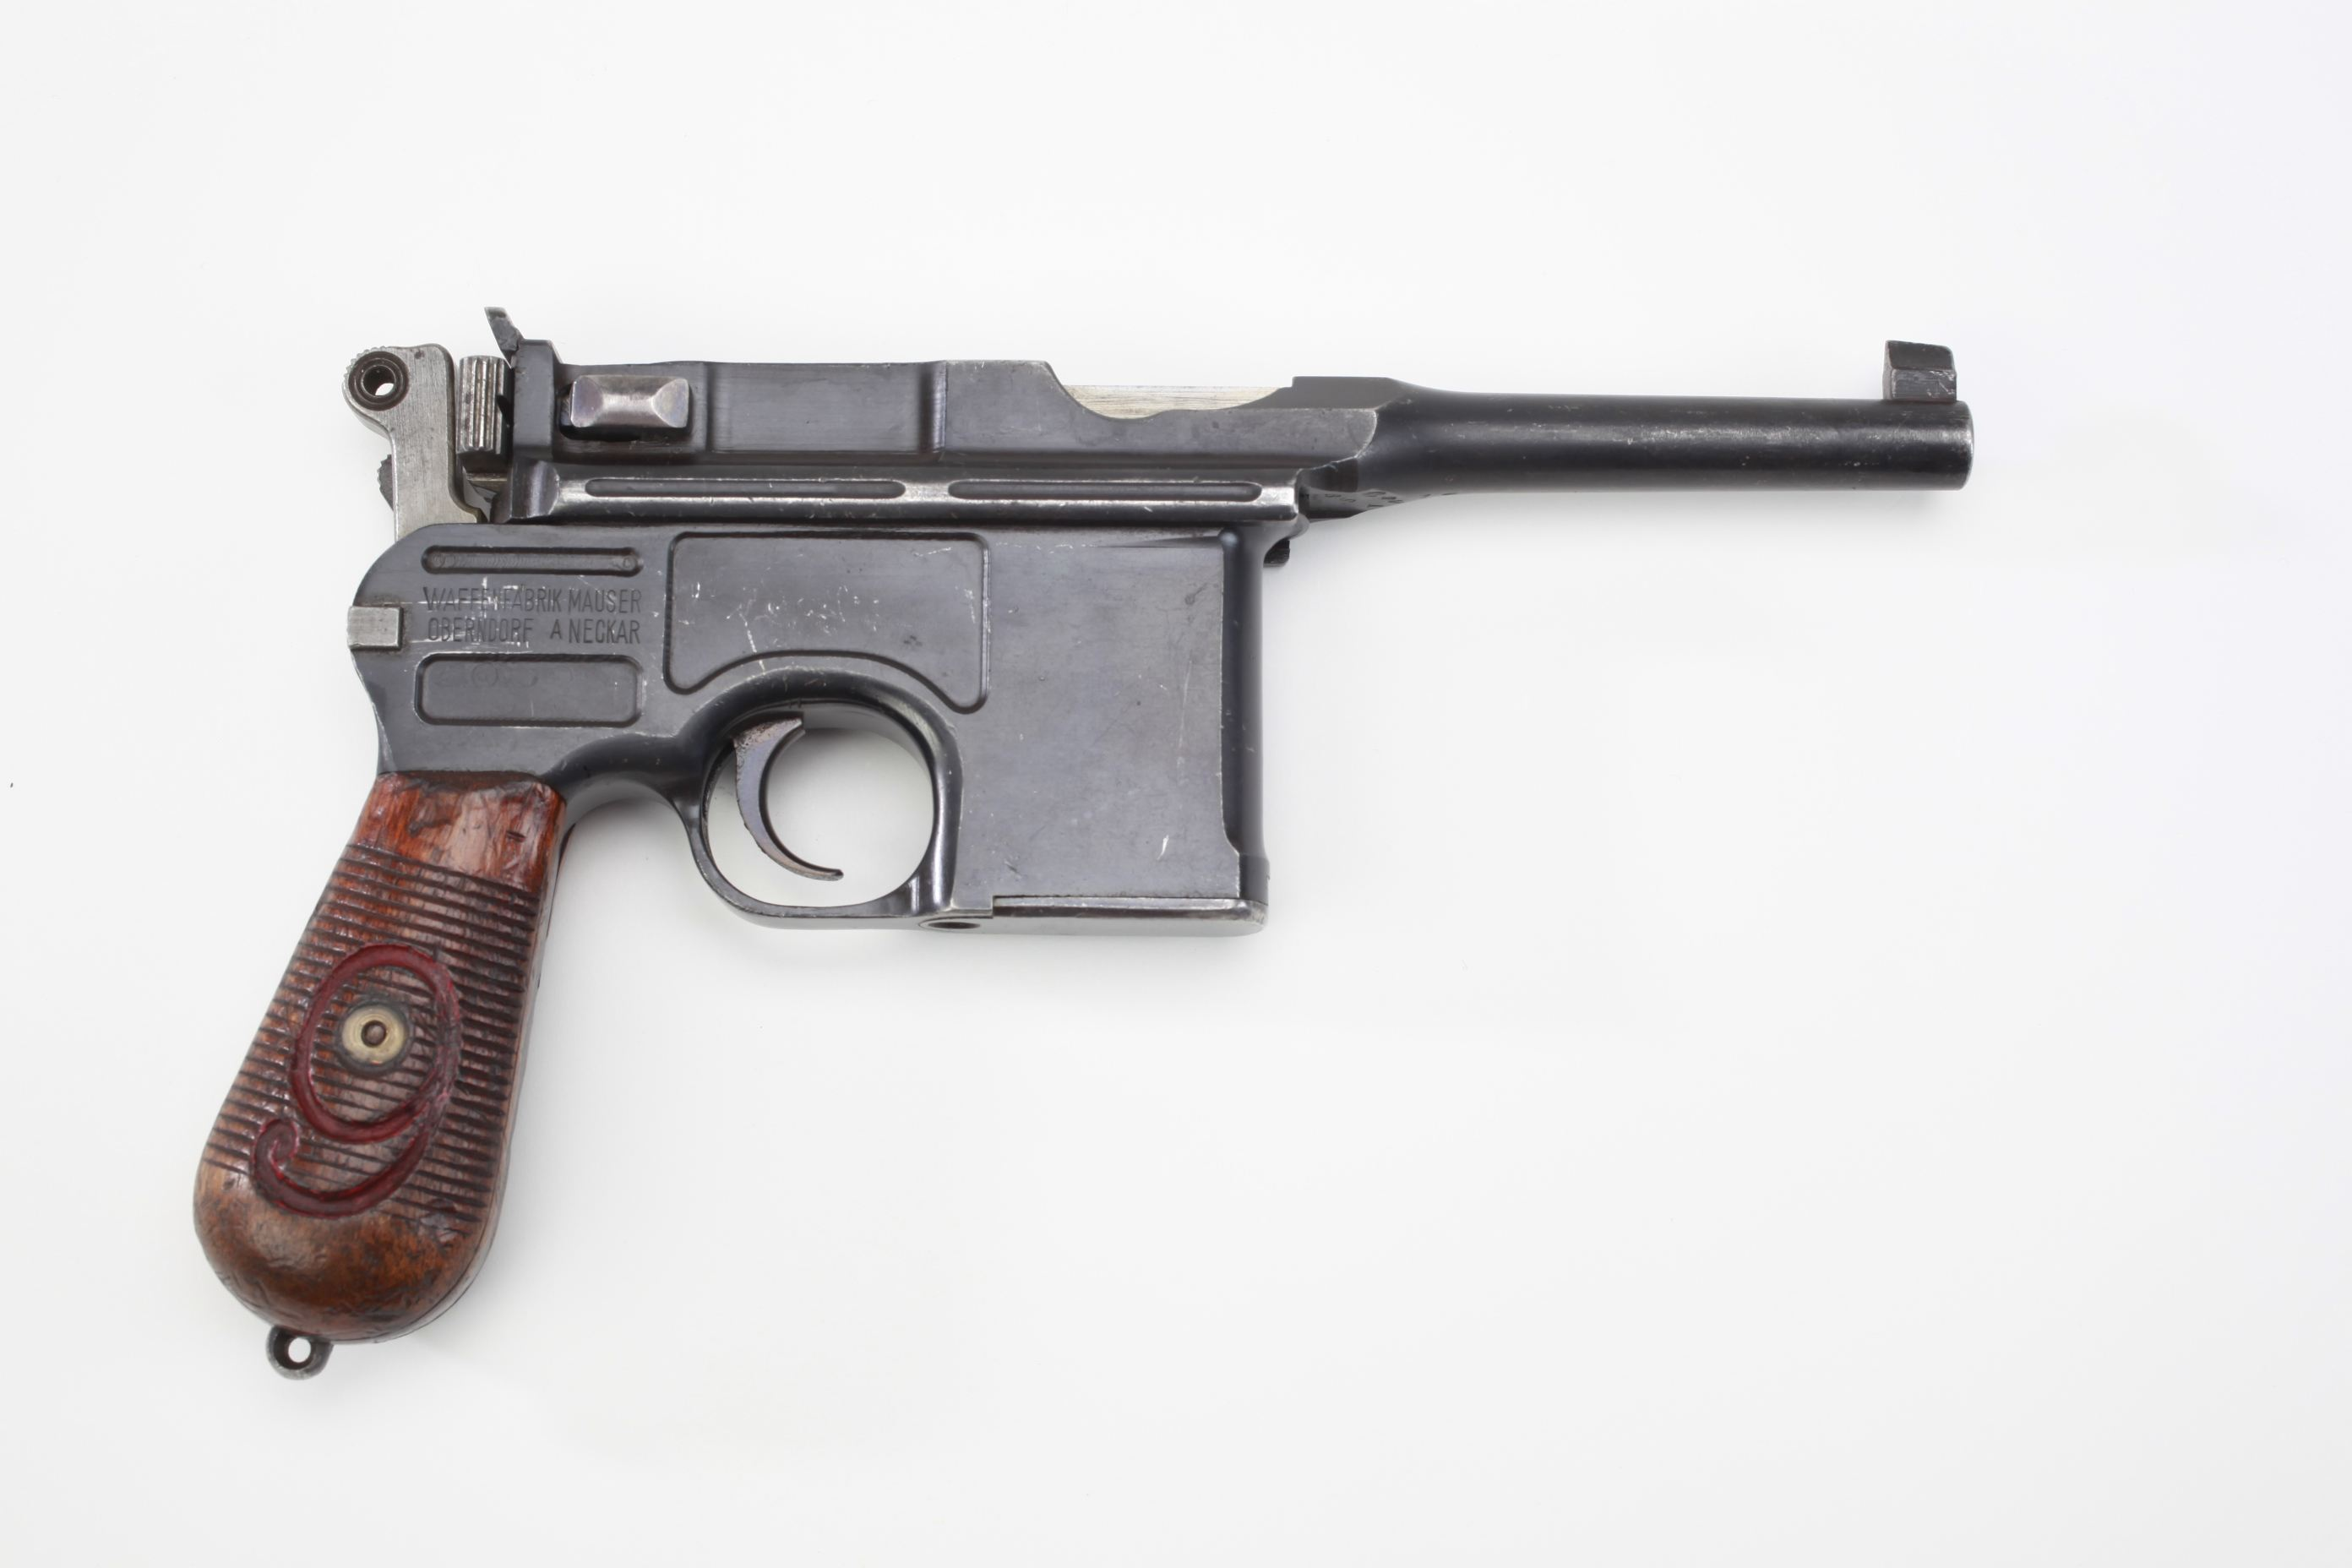 Mauser Model 1896 Broomhandle Military Semi Automatic Pistol